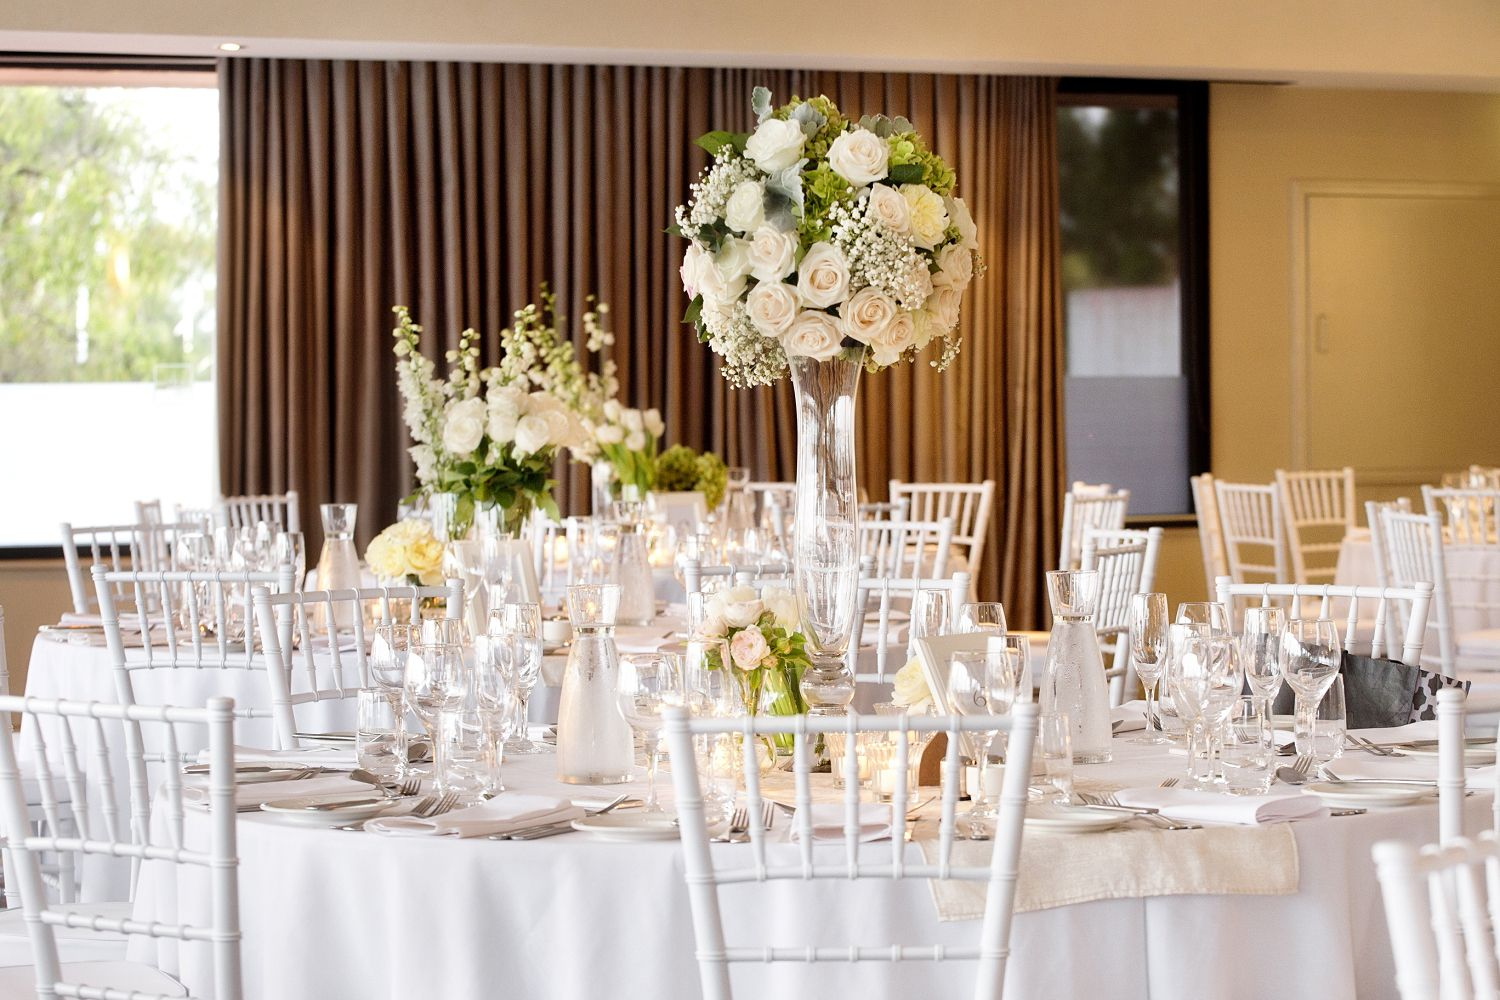 State Reception Centre Frasers Kings Park Wedding Perth